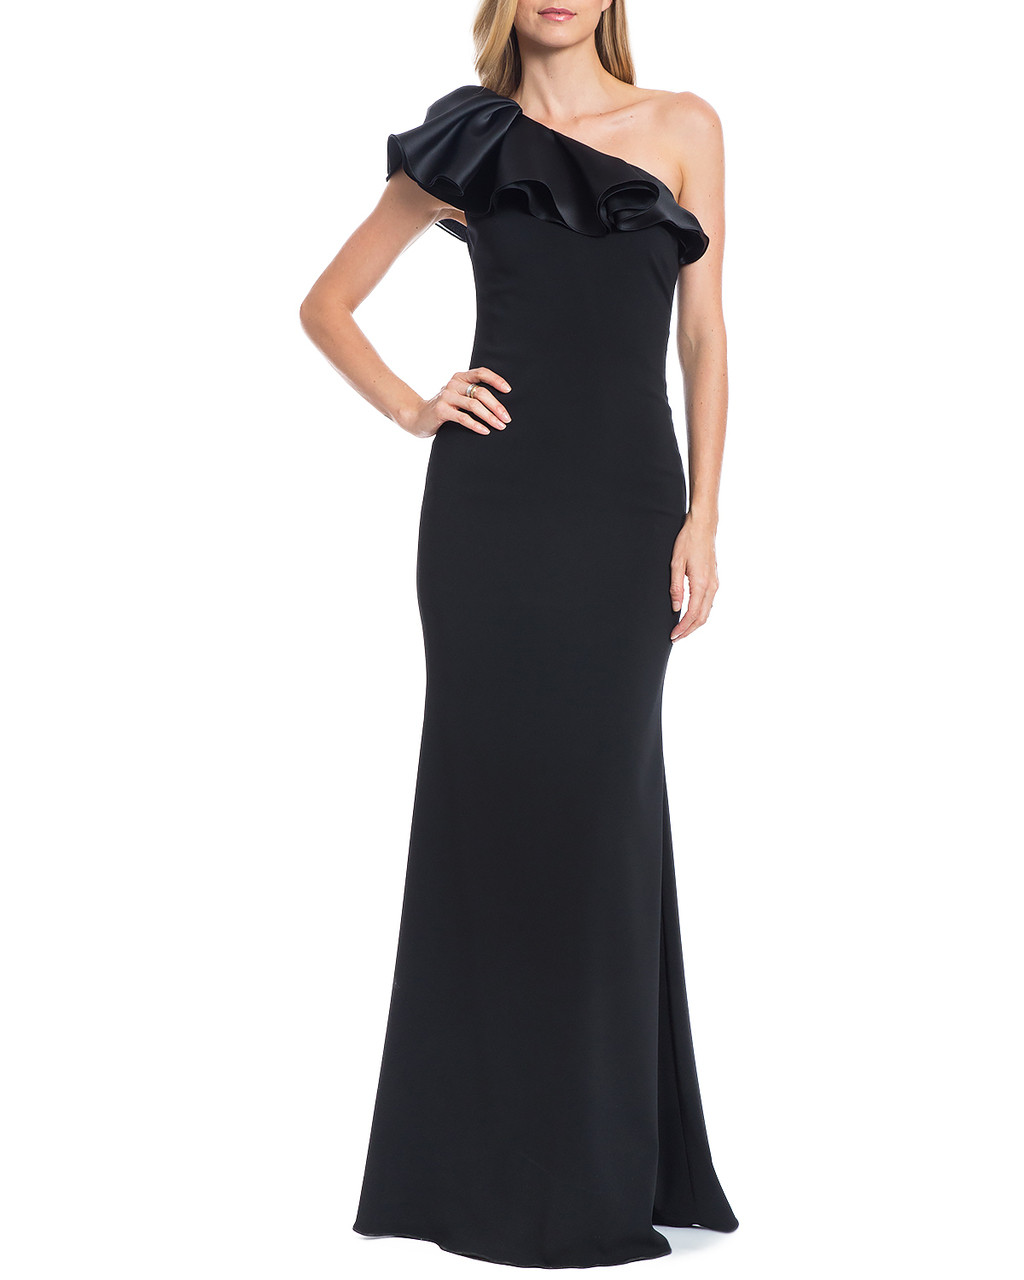 18261adff218 One-Shoulder Ruffle Evening Gown by Badgley Mischka